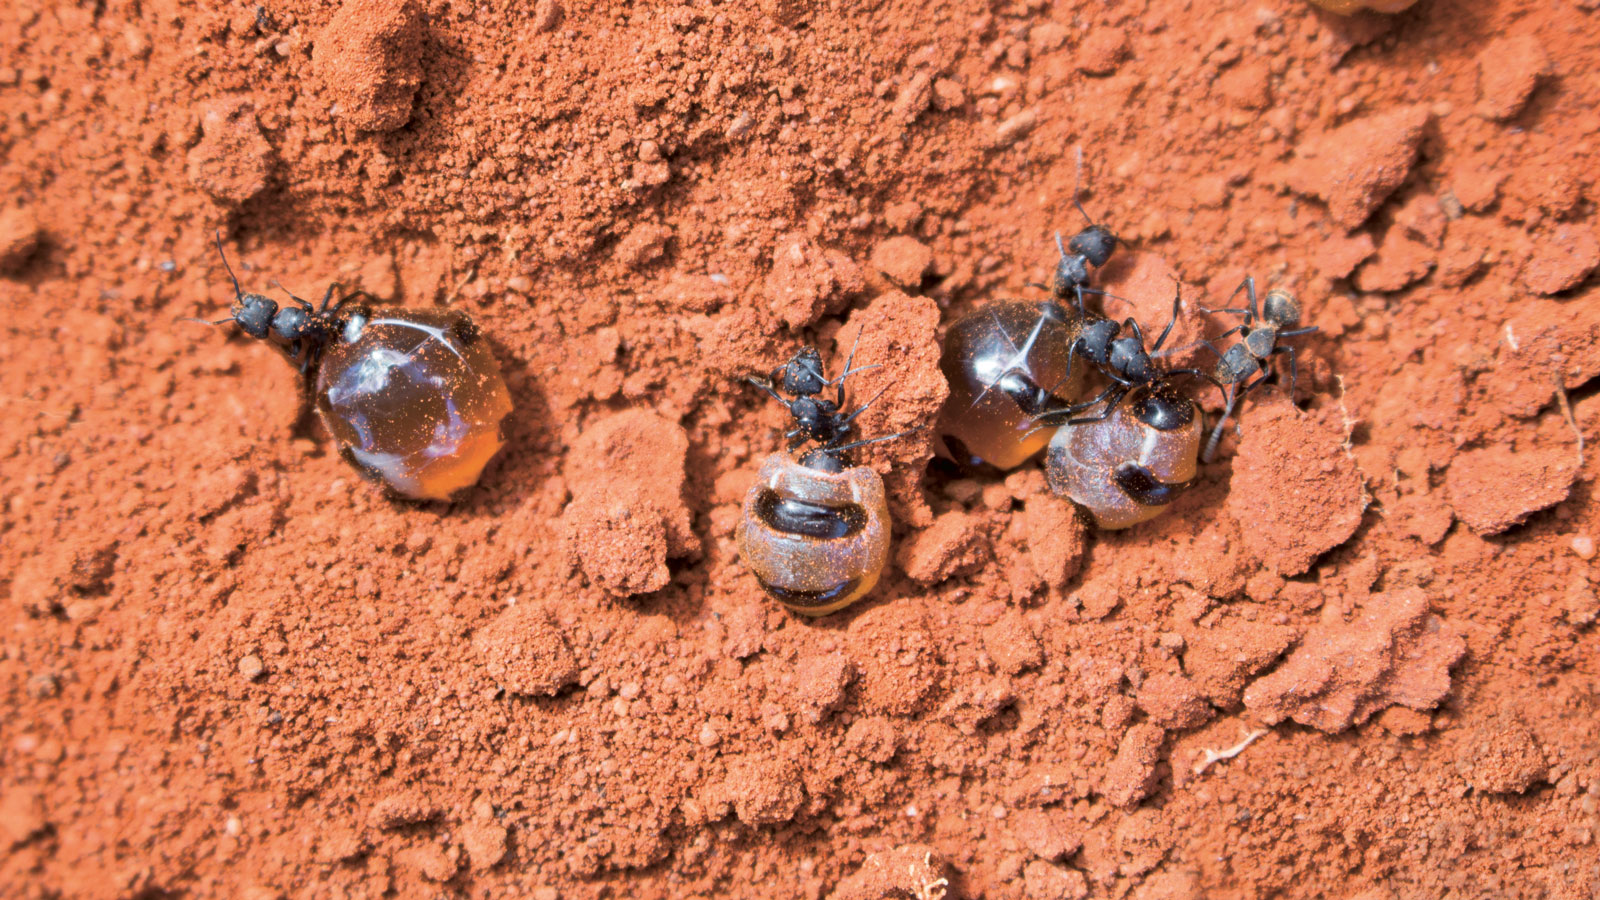 Newly dug honey ants, Australia